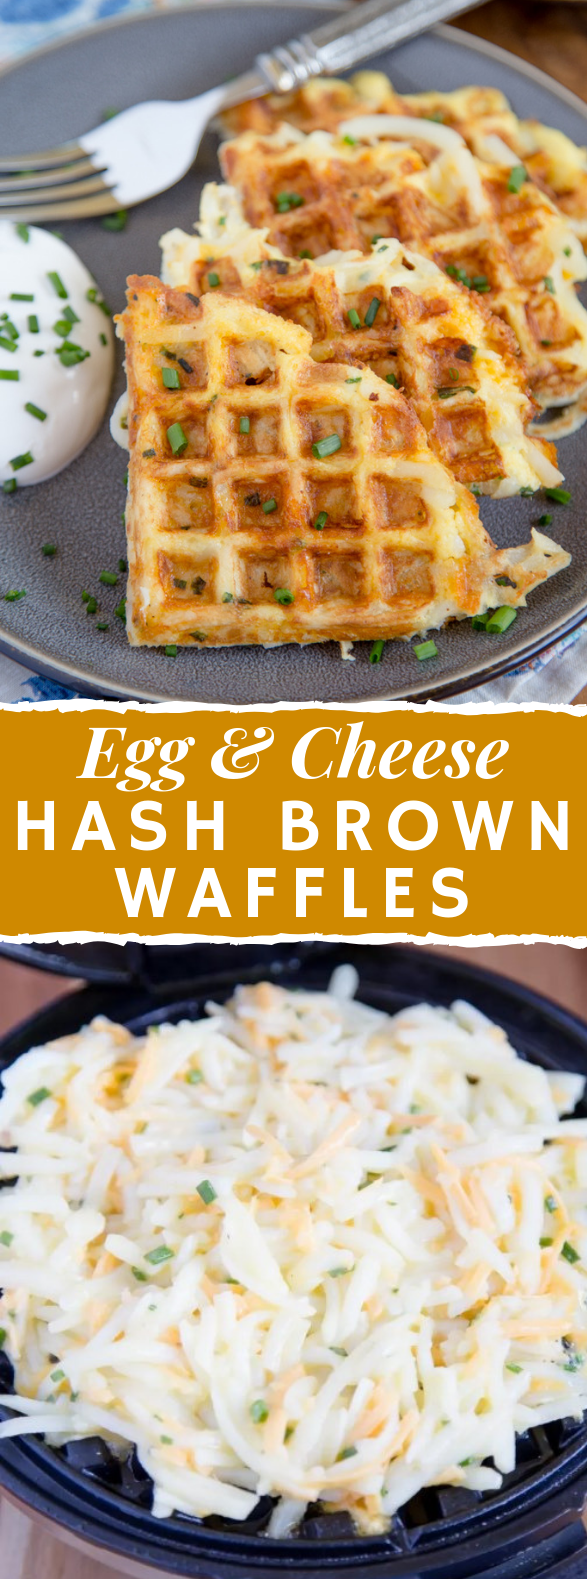 EGG & CHEESE HASH BROWN WAFFLES #breakfast #healthyrecipes